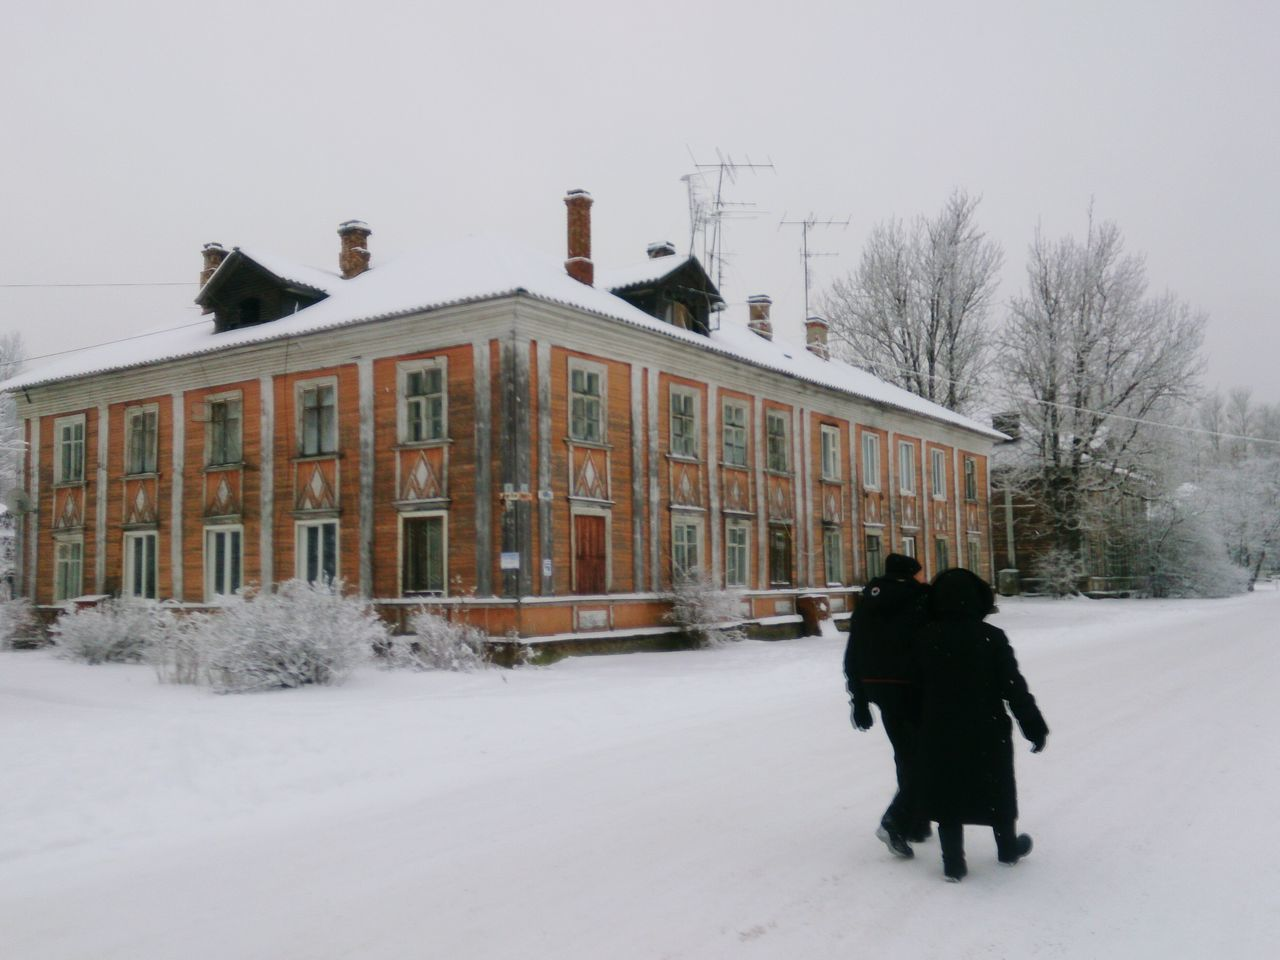 A couple walks around on a winter day. Sony Xperia Zr Mobile Photography Mobilephotography Winter Walking Around Outside Cold Temperature Snow Day Snow Photography Cold Snow Winterscapes Wintertime Town Old Town Wooden House My Favorite Photo